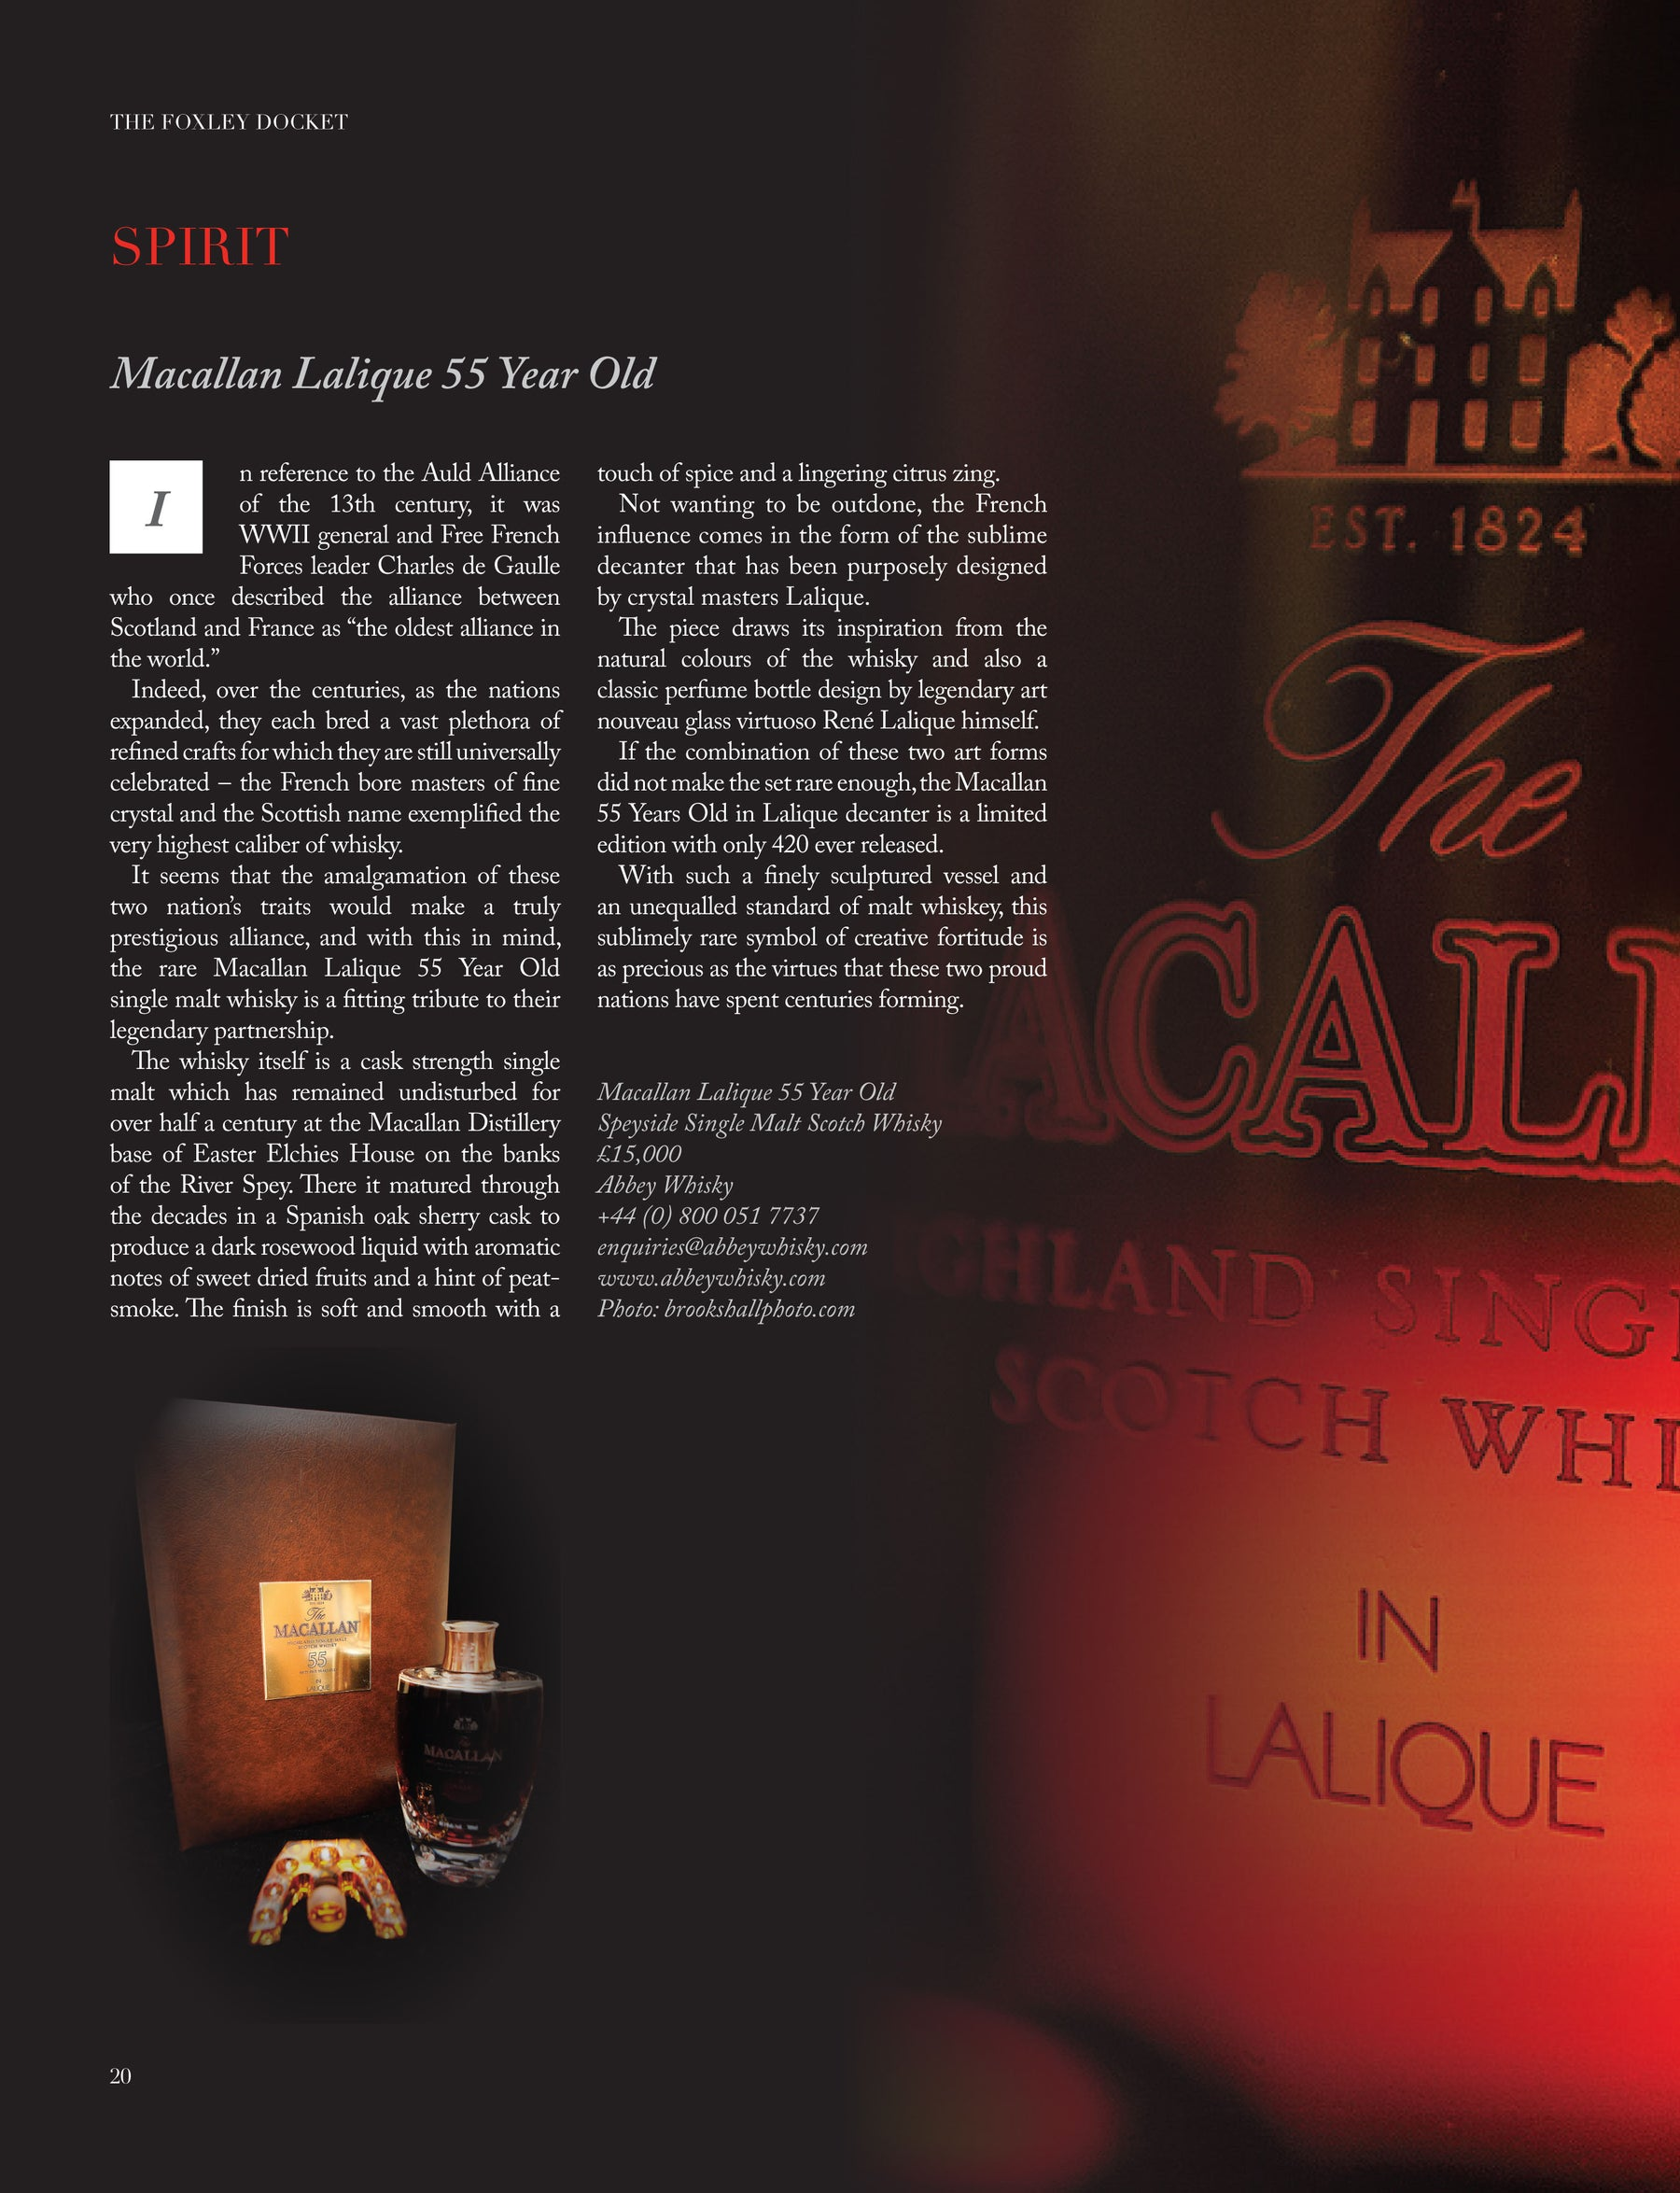 Macallan 55 Year Old Lalique - The Foxley Docket